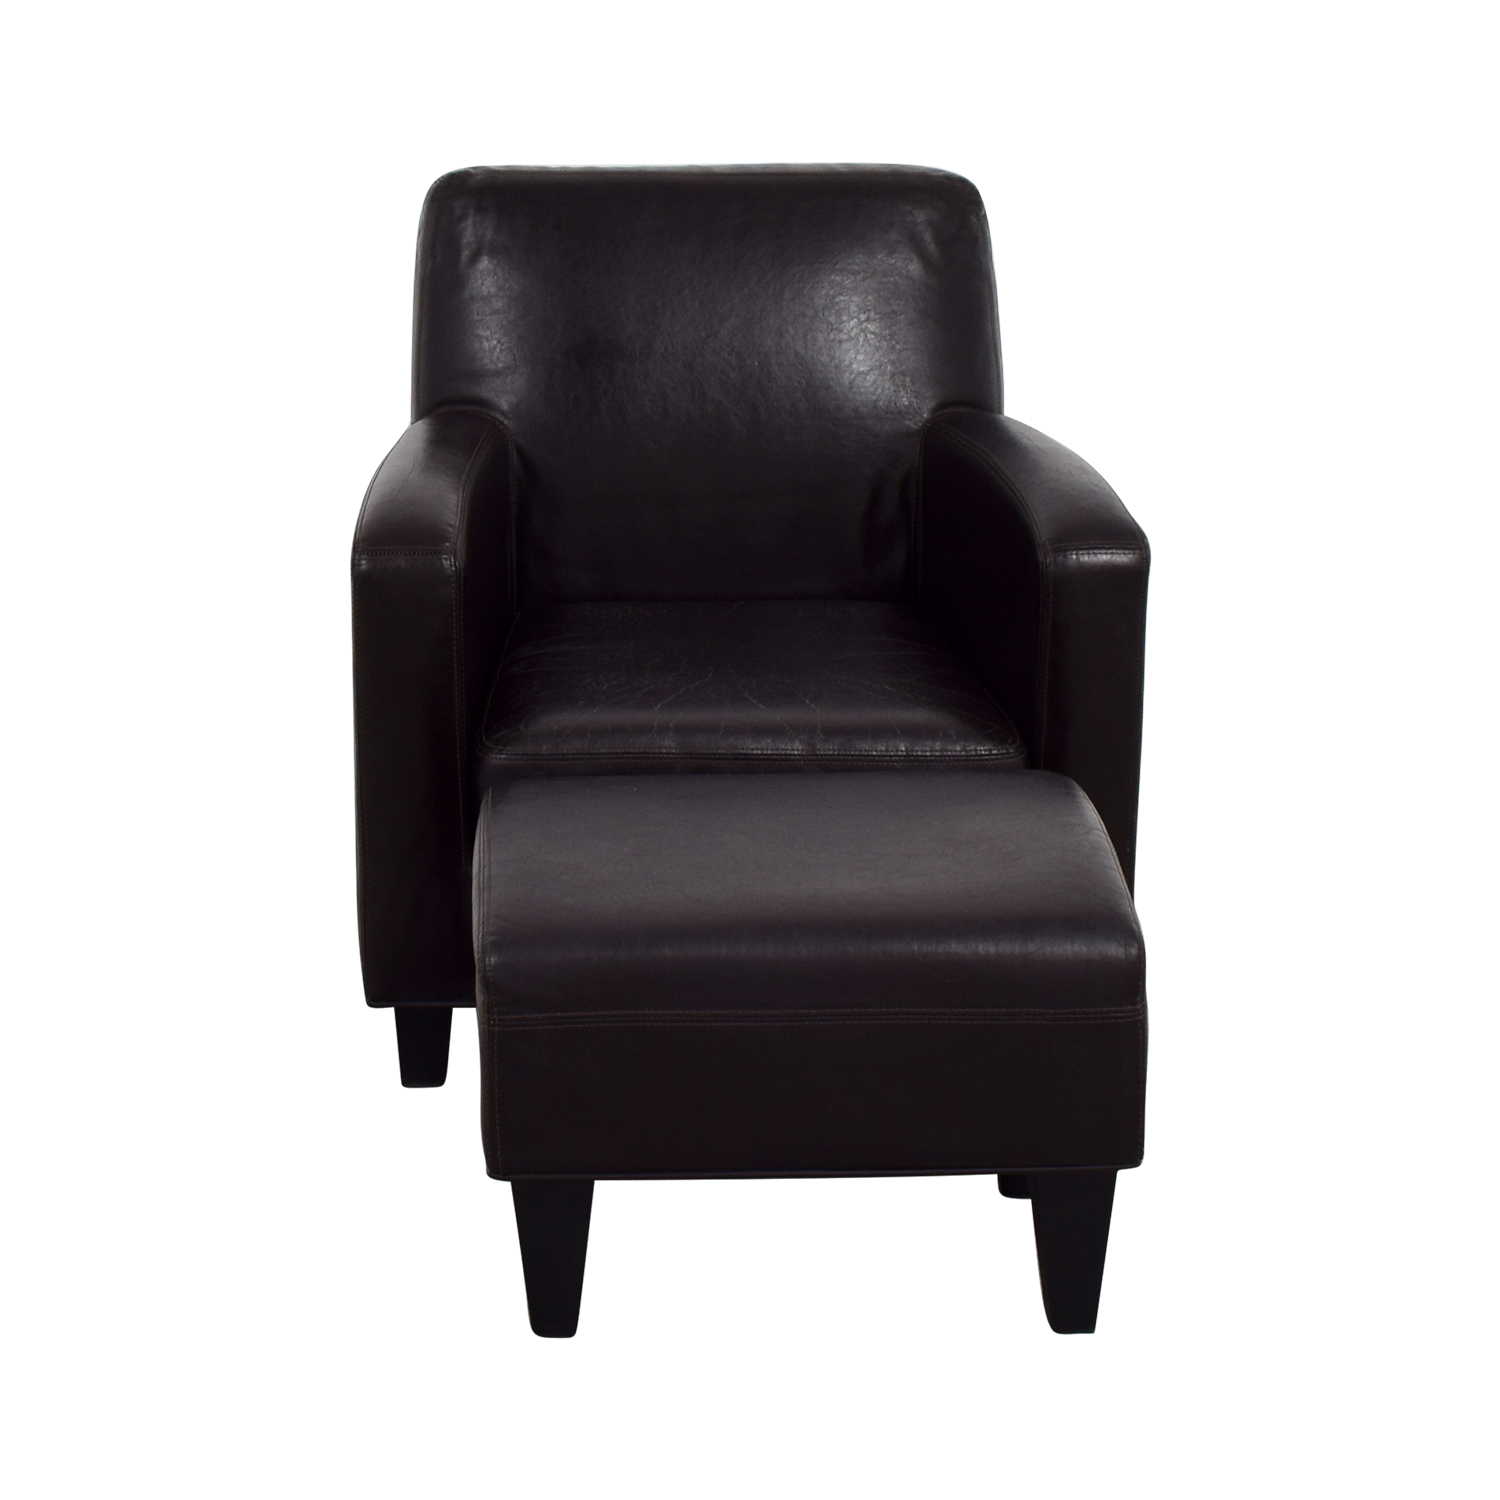 Leather Chairs And Ottomans Sale 52 Off Ikea Ikea Bonded Brown Leather Chair And Ottoman Chairs